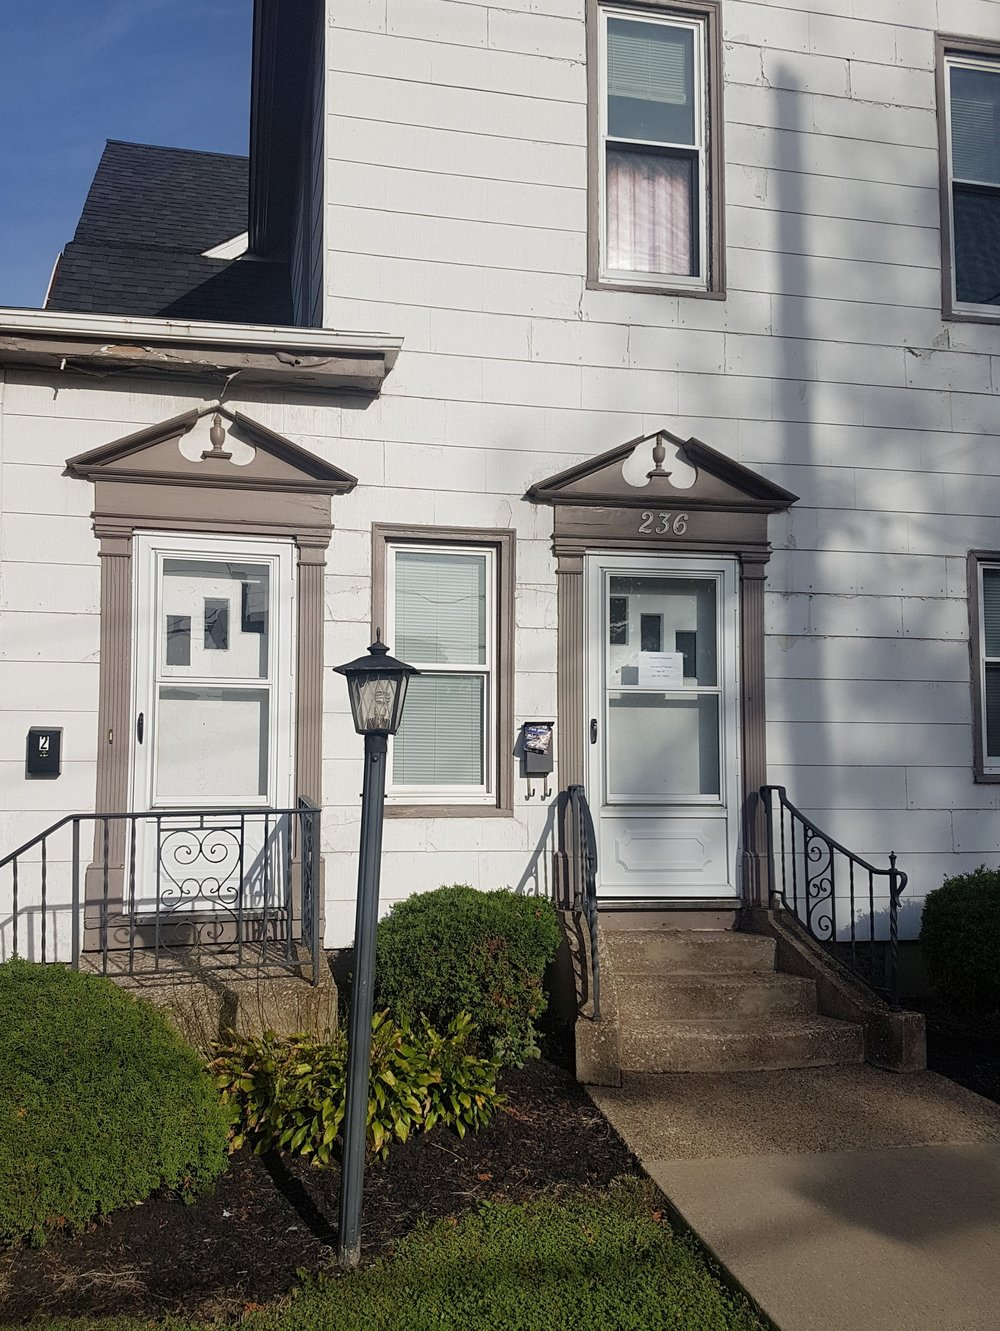 High GPA - 236 West 8th St. Erie Pa 16501In the beautiful Presta District, this three unit building offers off street parking and a quick walk to Zurn and Morosky buildings. Consists of one, three-bedroom and two, one-bedroom apartments.